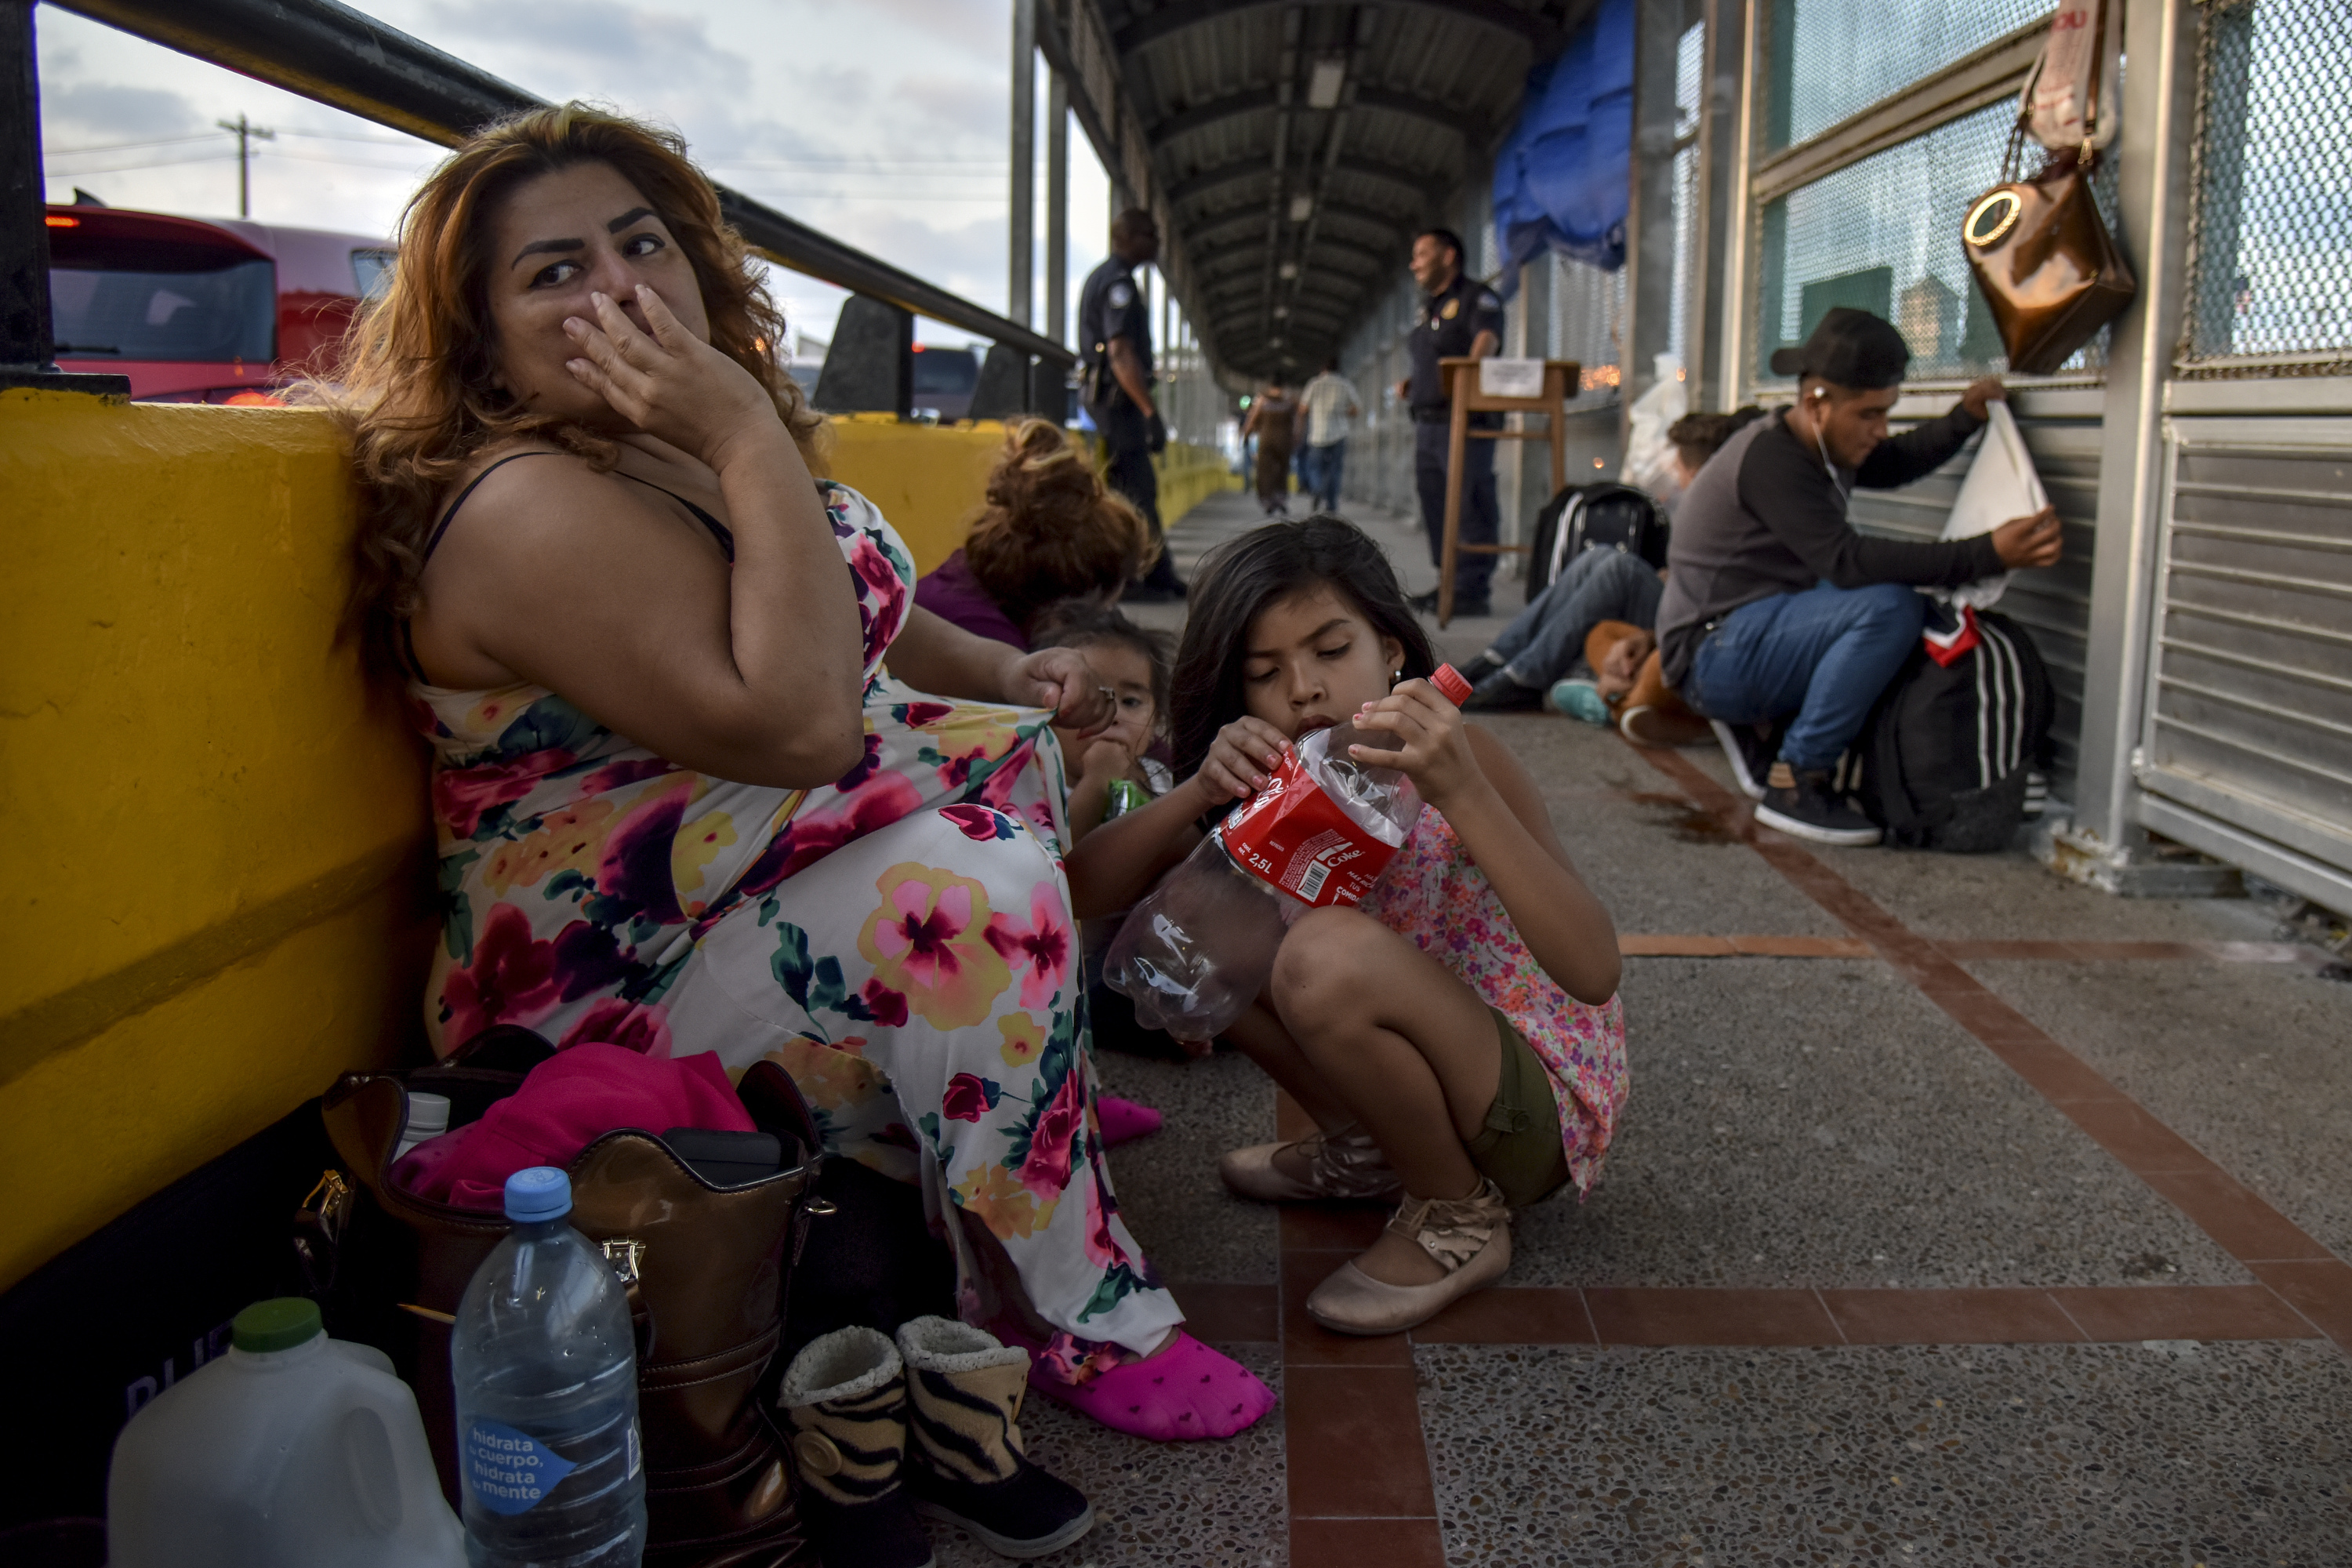 House Democrats say migrants aren't getting fair hearings at tent courts on the border